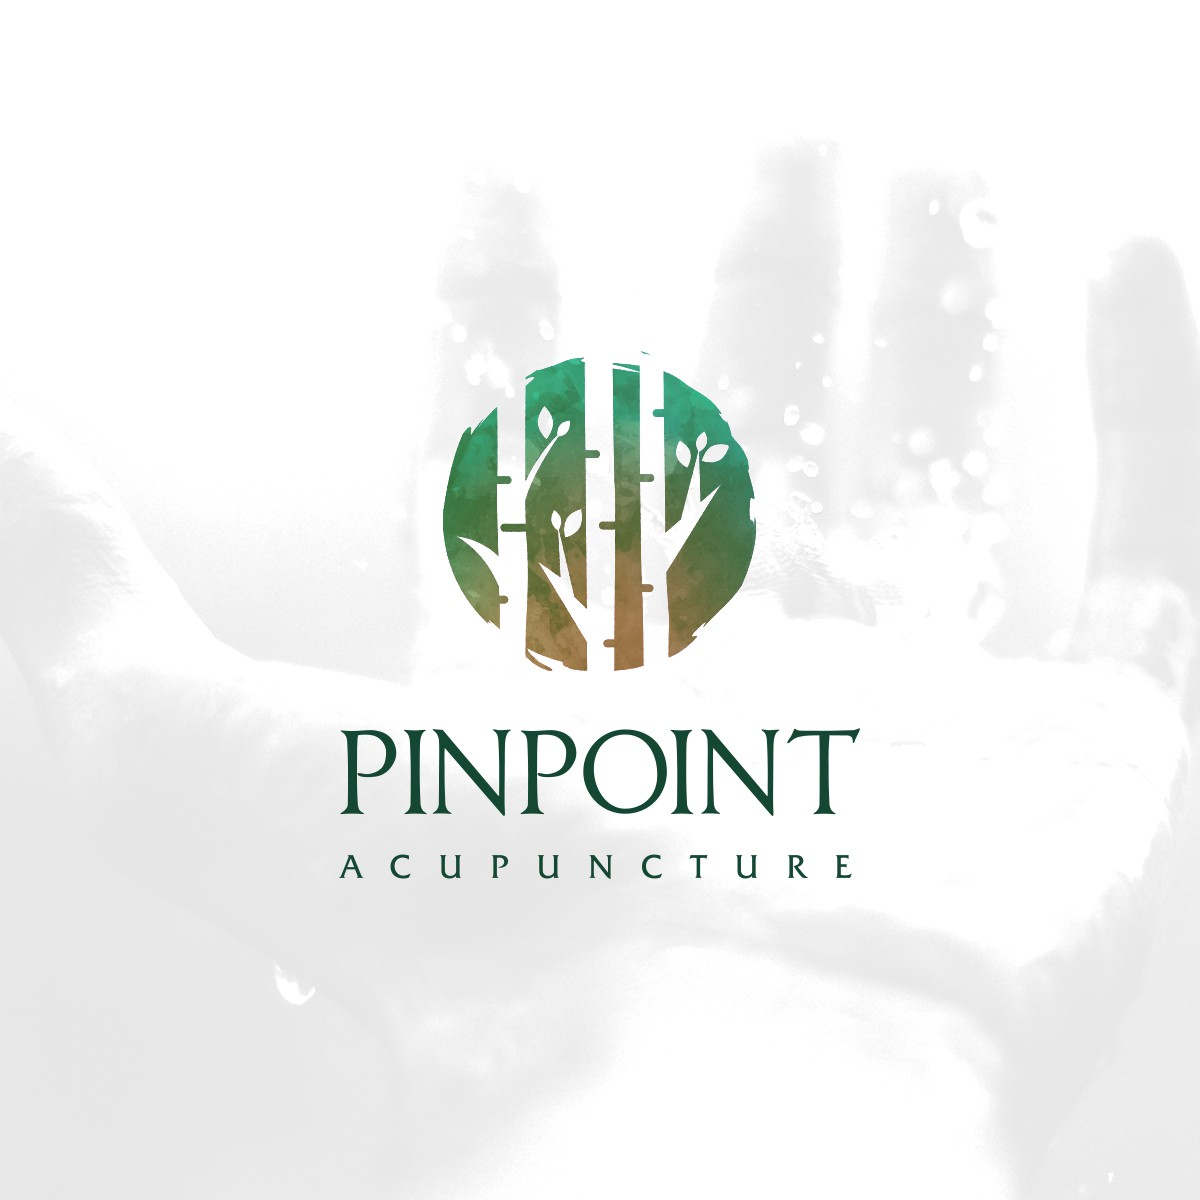 Pinpoint Acupuncture re-branding (logo, website and more)